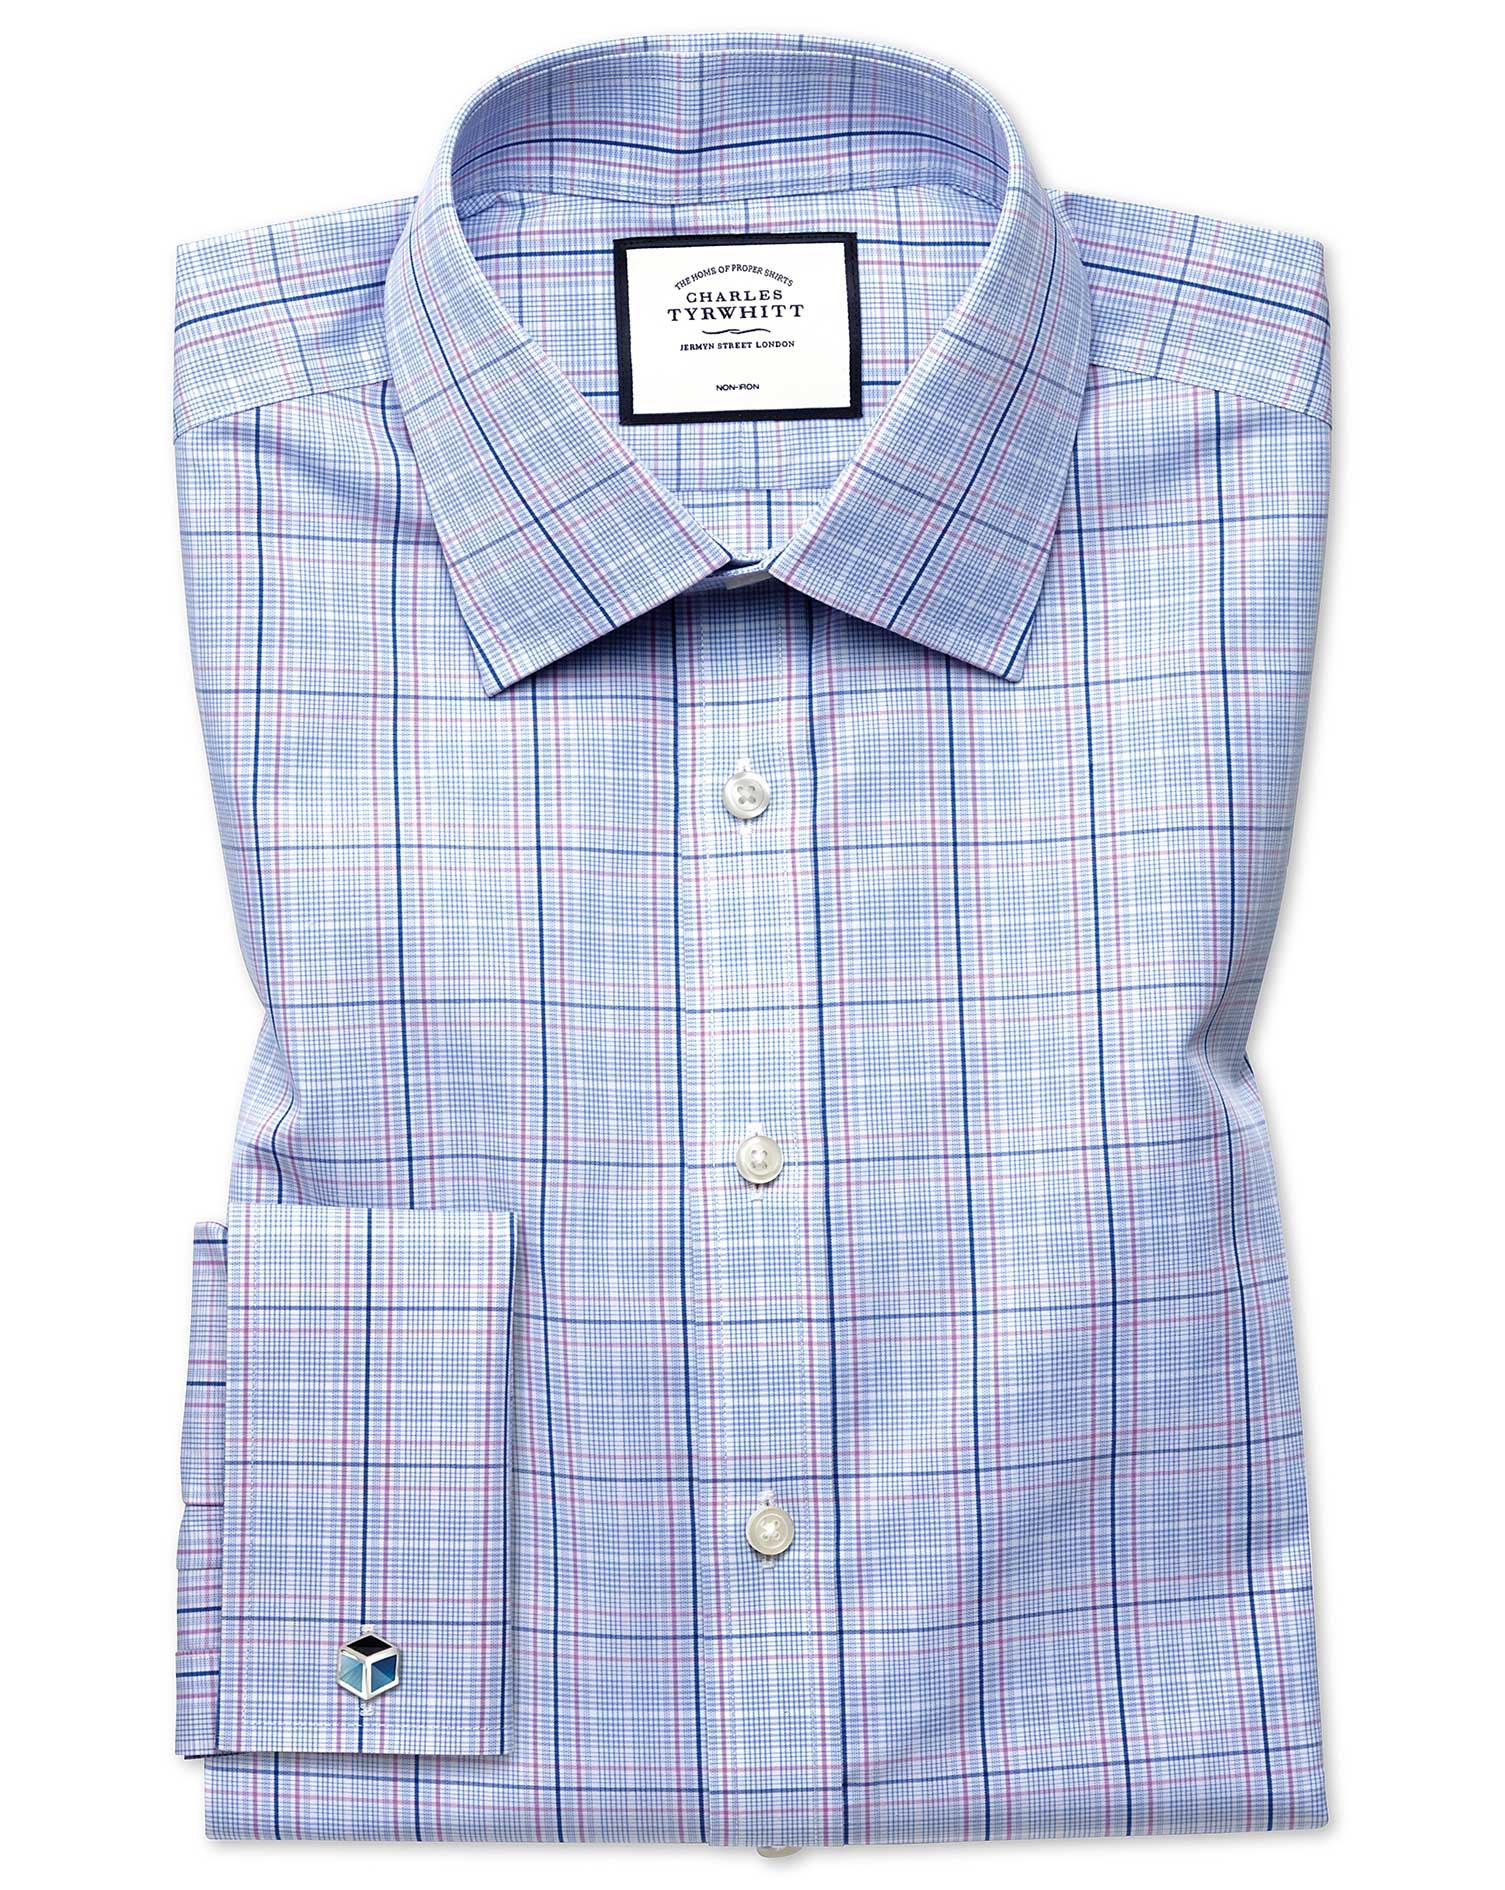 Slim Fit Non-Iron Prince Of Wales Sky Blue and Pink Cotton Formal Shirt Double Cuff Size 17.5/35 by